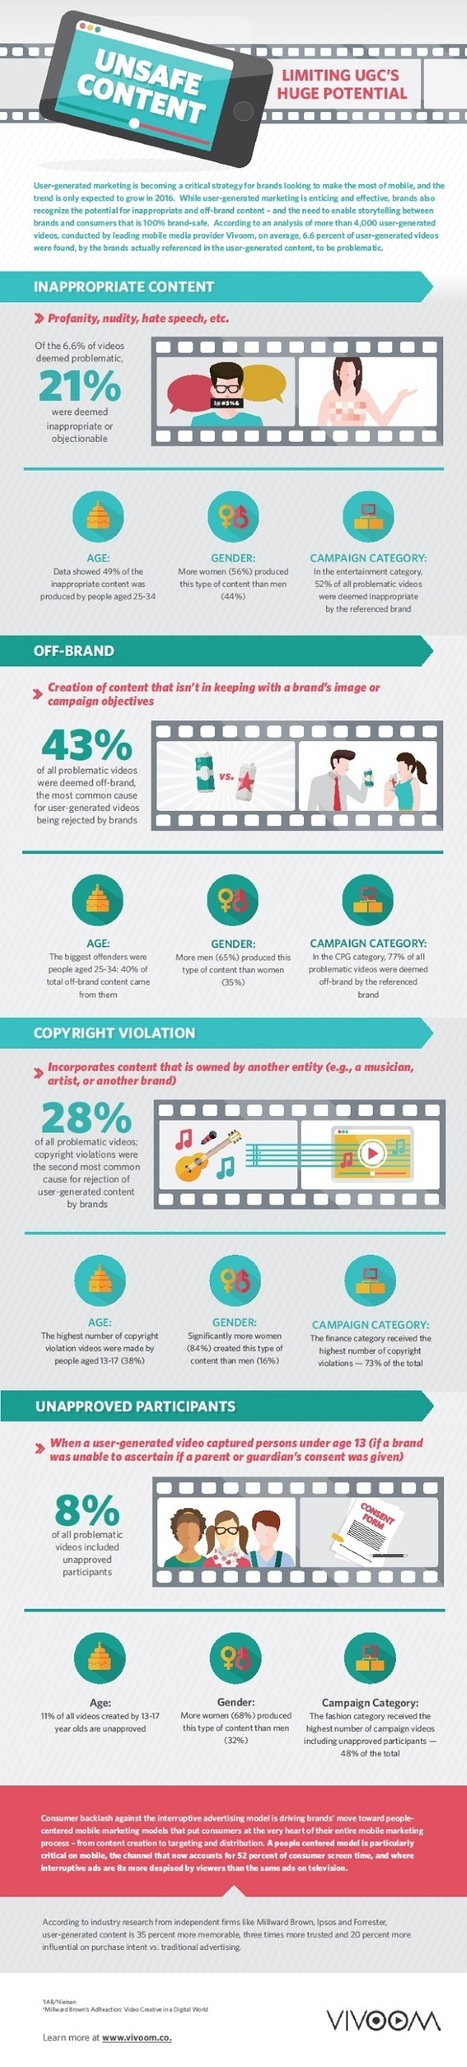 Beware of Unsafe User-Generated Content [Infographic] | Integrated Brand Communications | Scoop.it